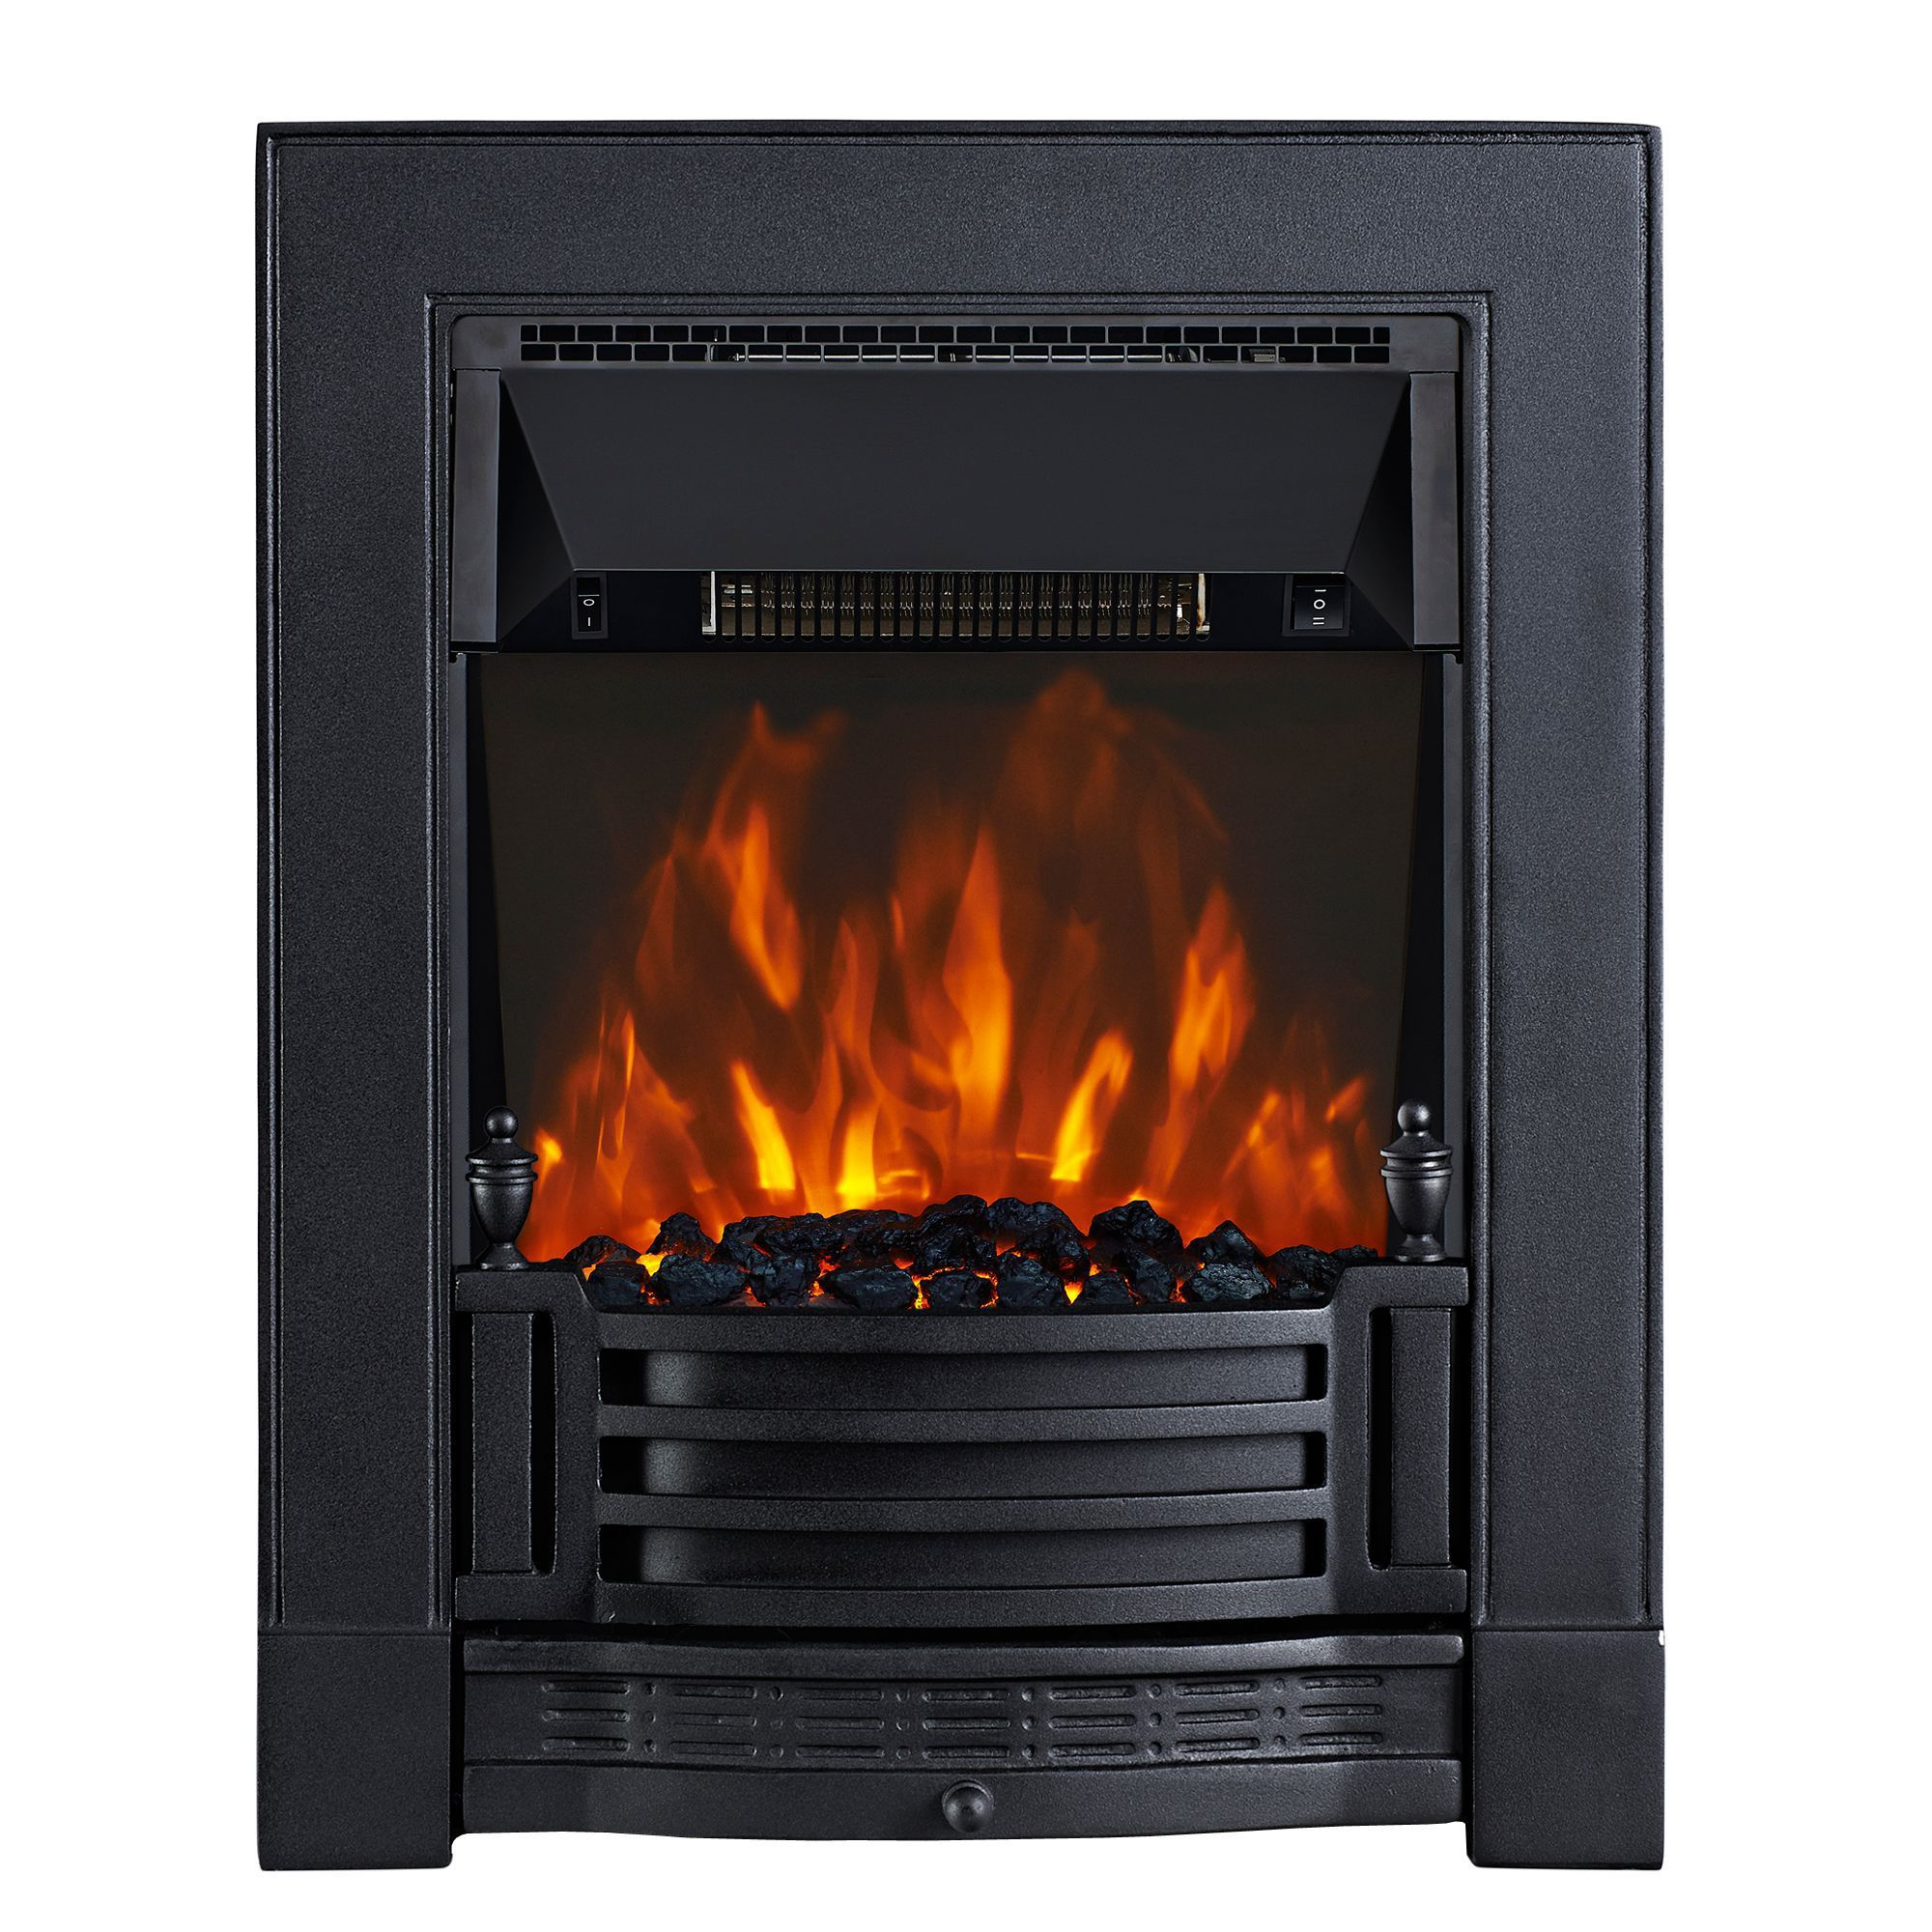 Focal Point Finsbury Black Led Remote Control Electric Fire